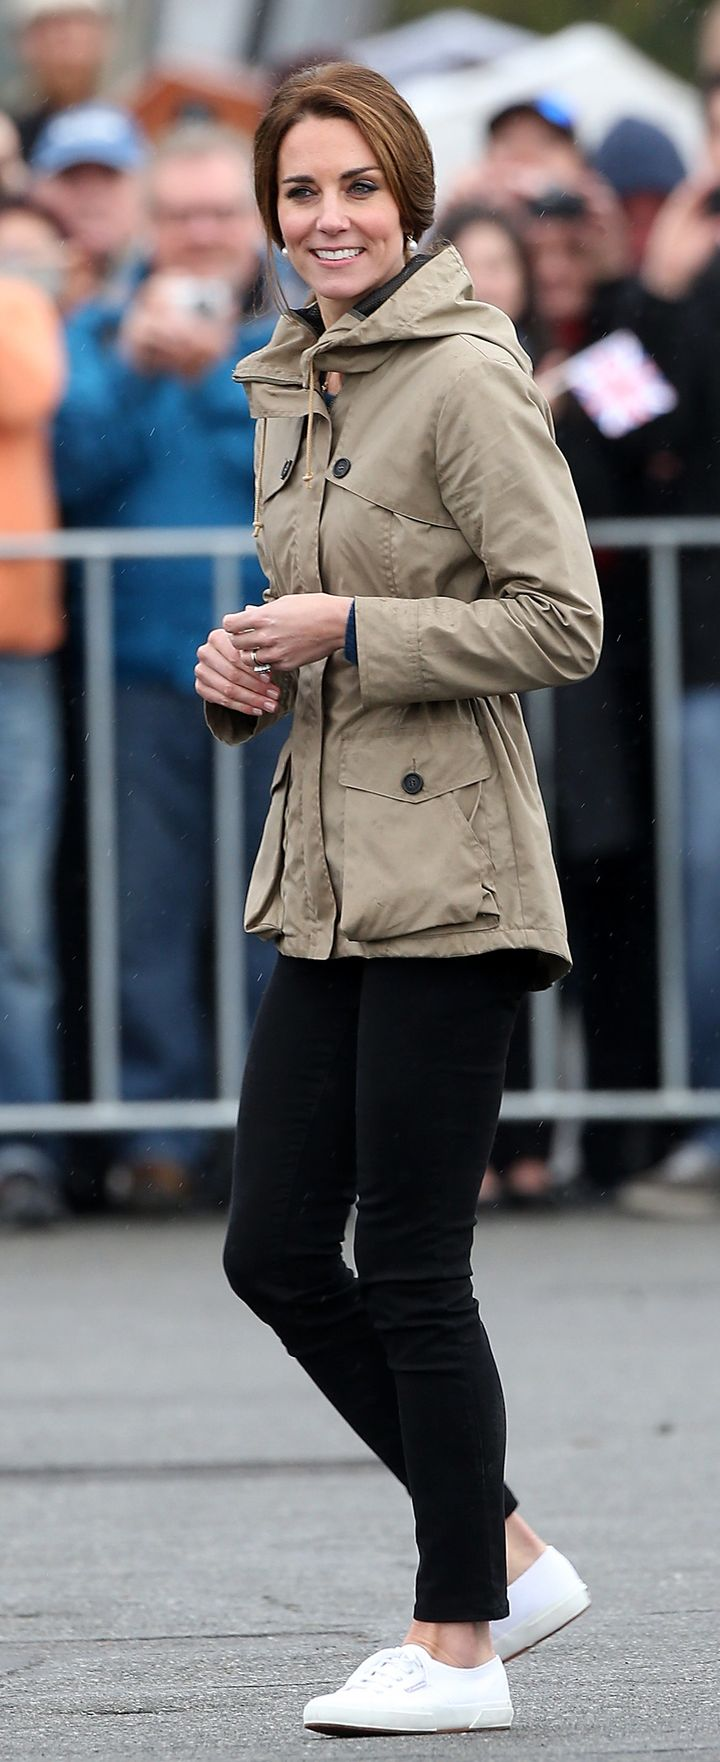 Kate disembarks from a ship in Canada'sVictoria Harbour during a royal tour in October 2016.